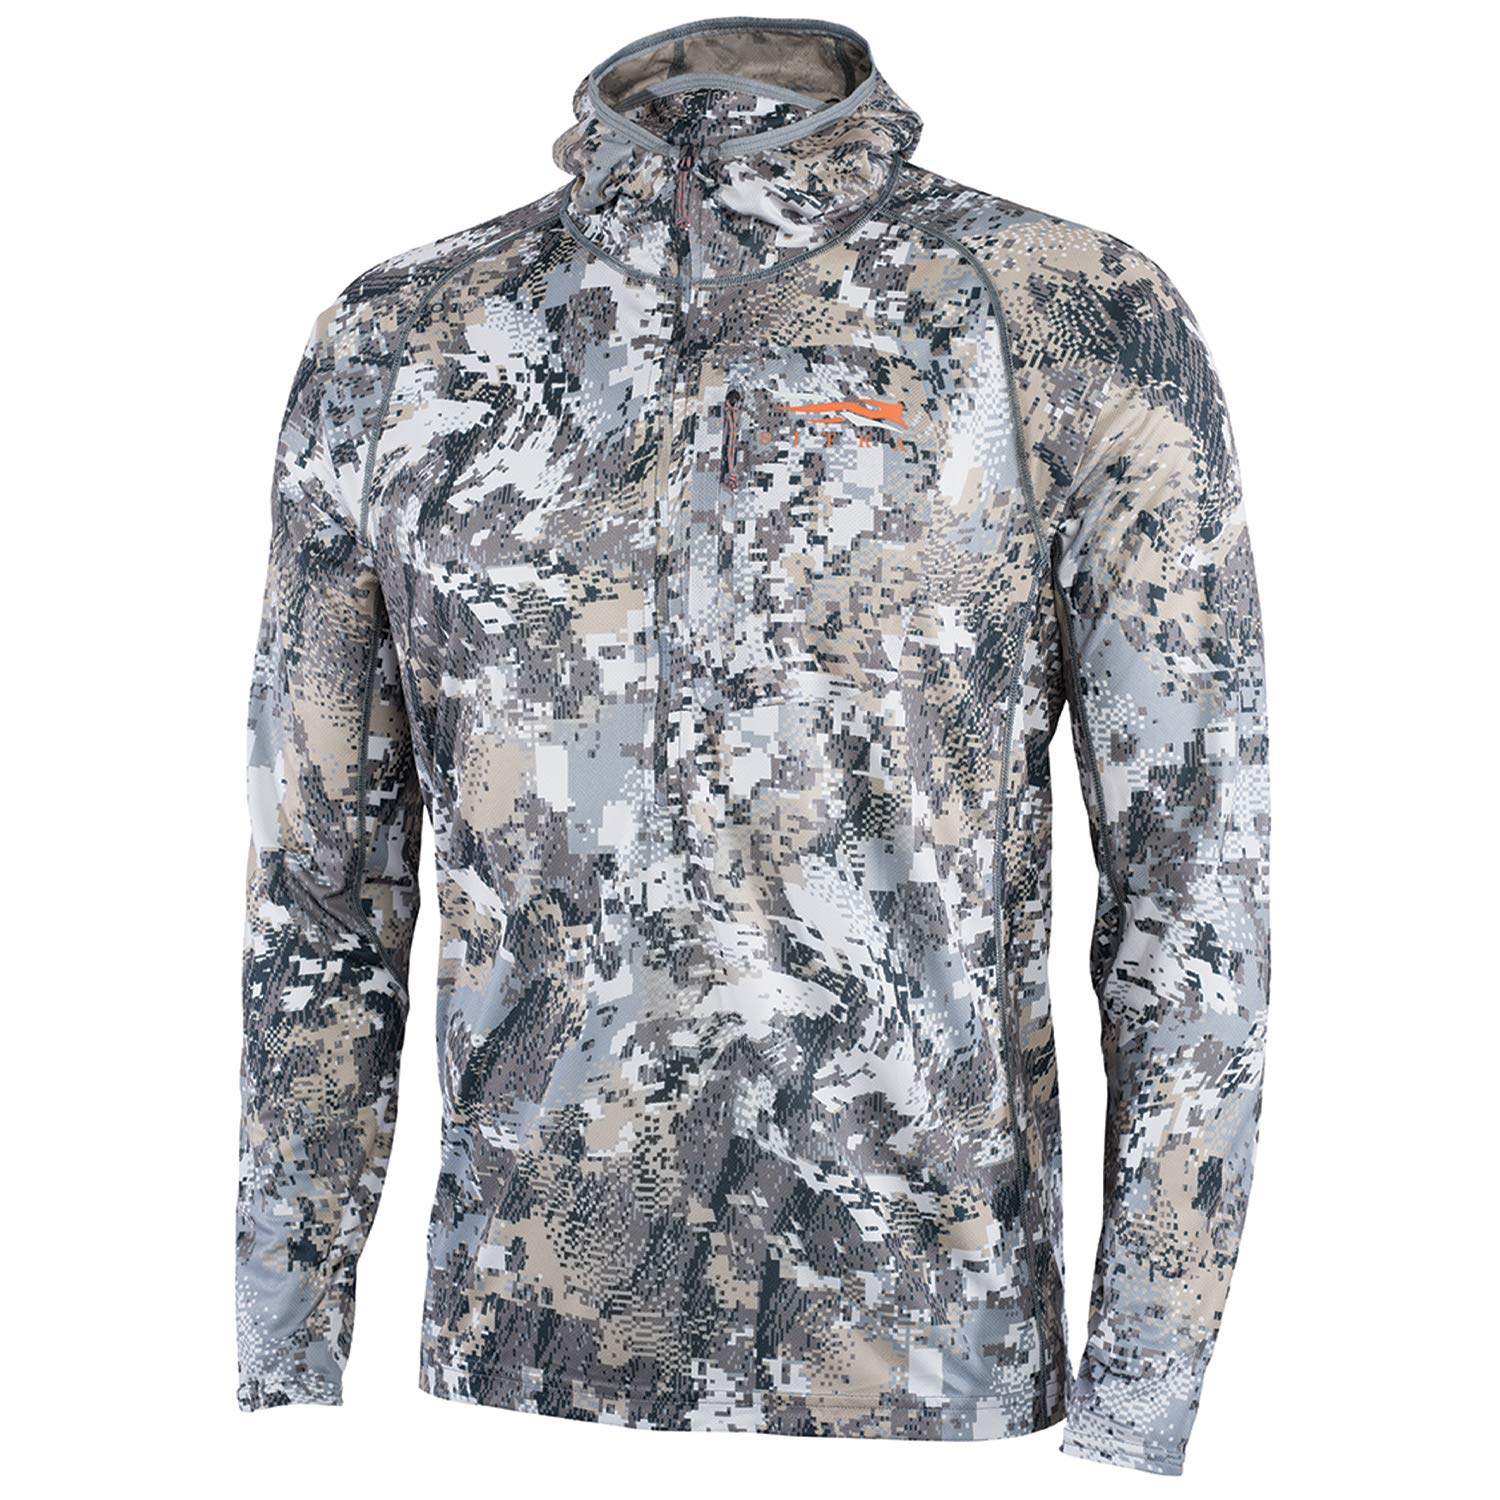 SITKA Gear New for 2019 CORE Lightweight Hoody Optifade Elevated II Small